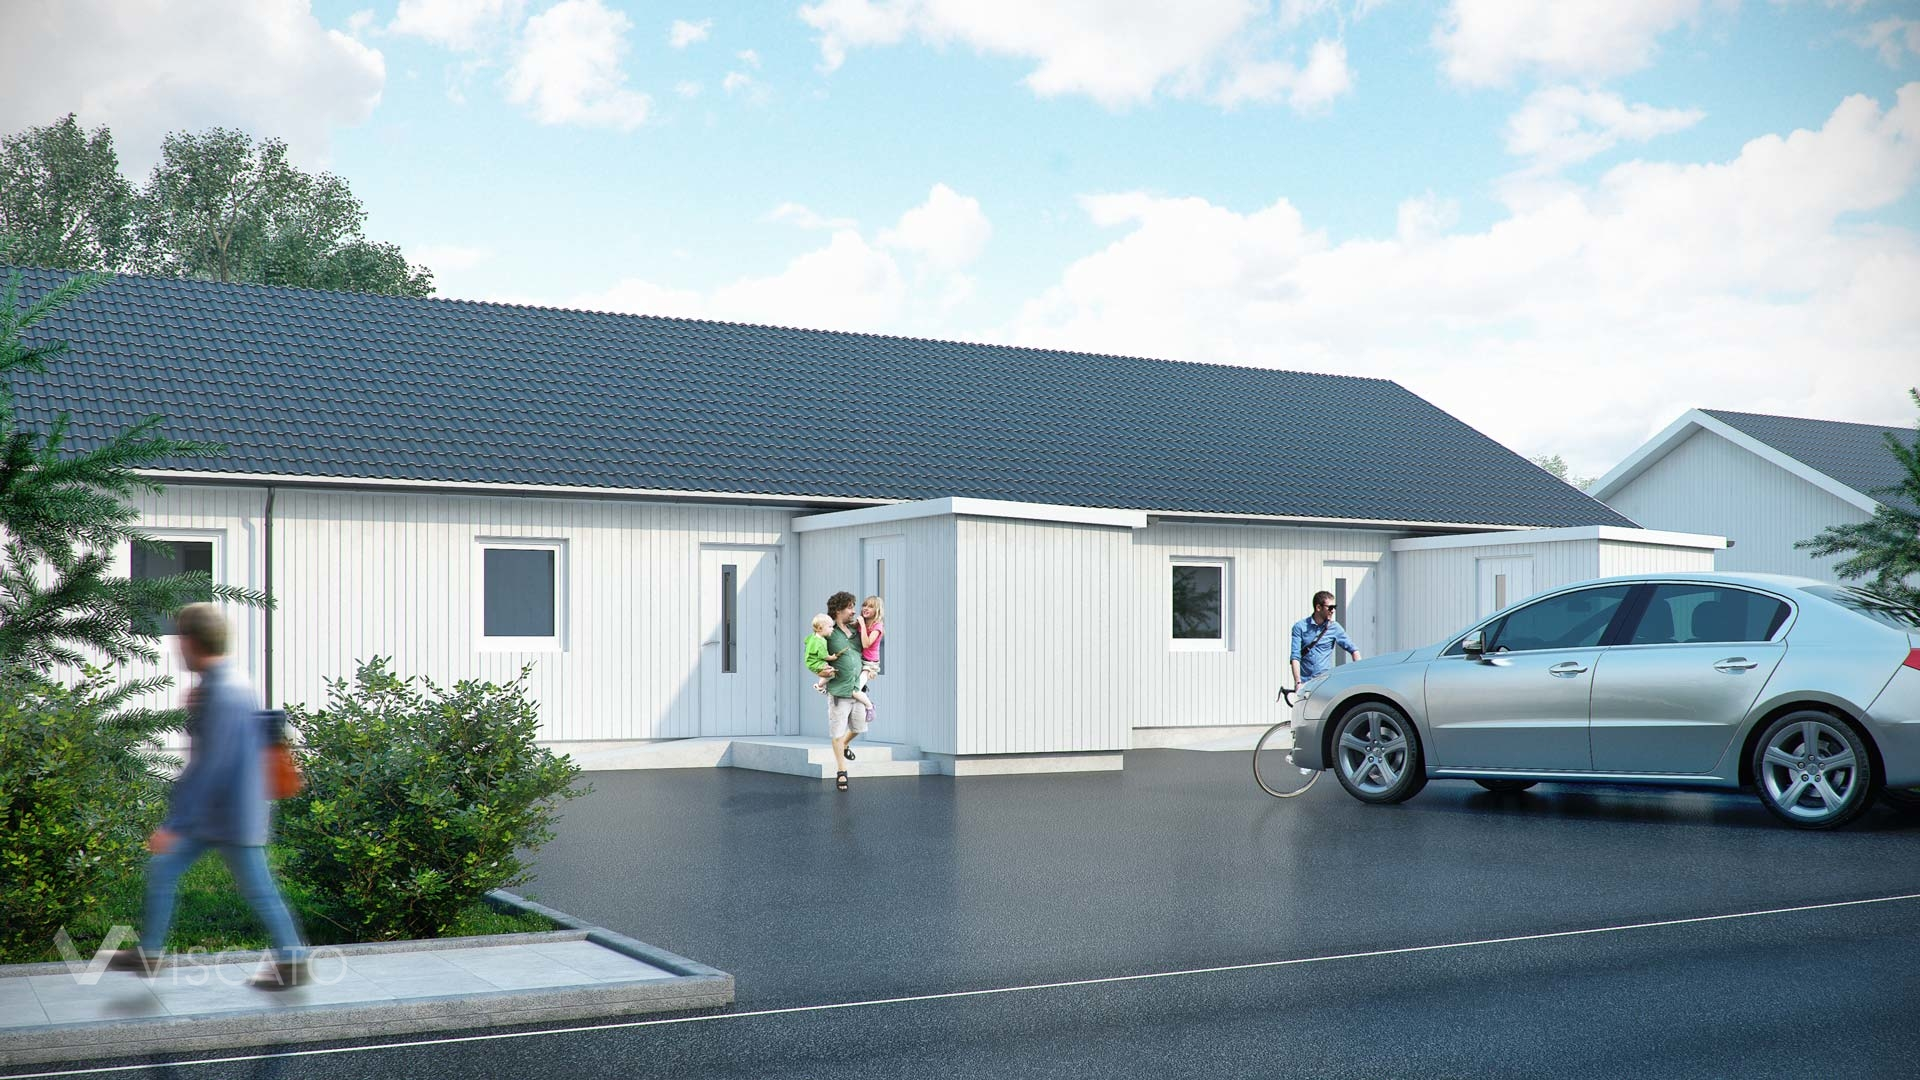 3d Exterior Visualization of settlement in Knislinge, Sweden- front entrance with parking lot